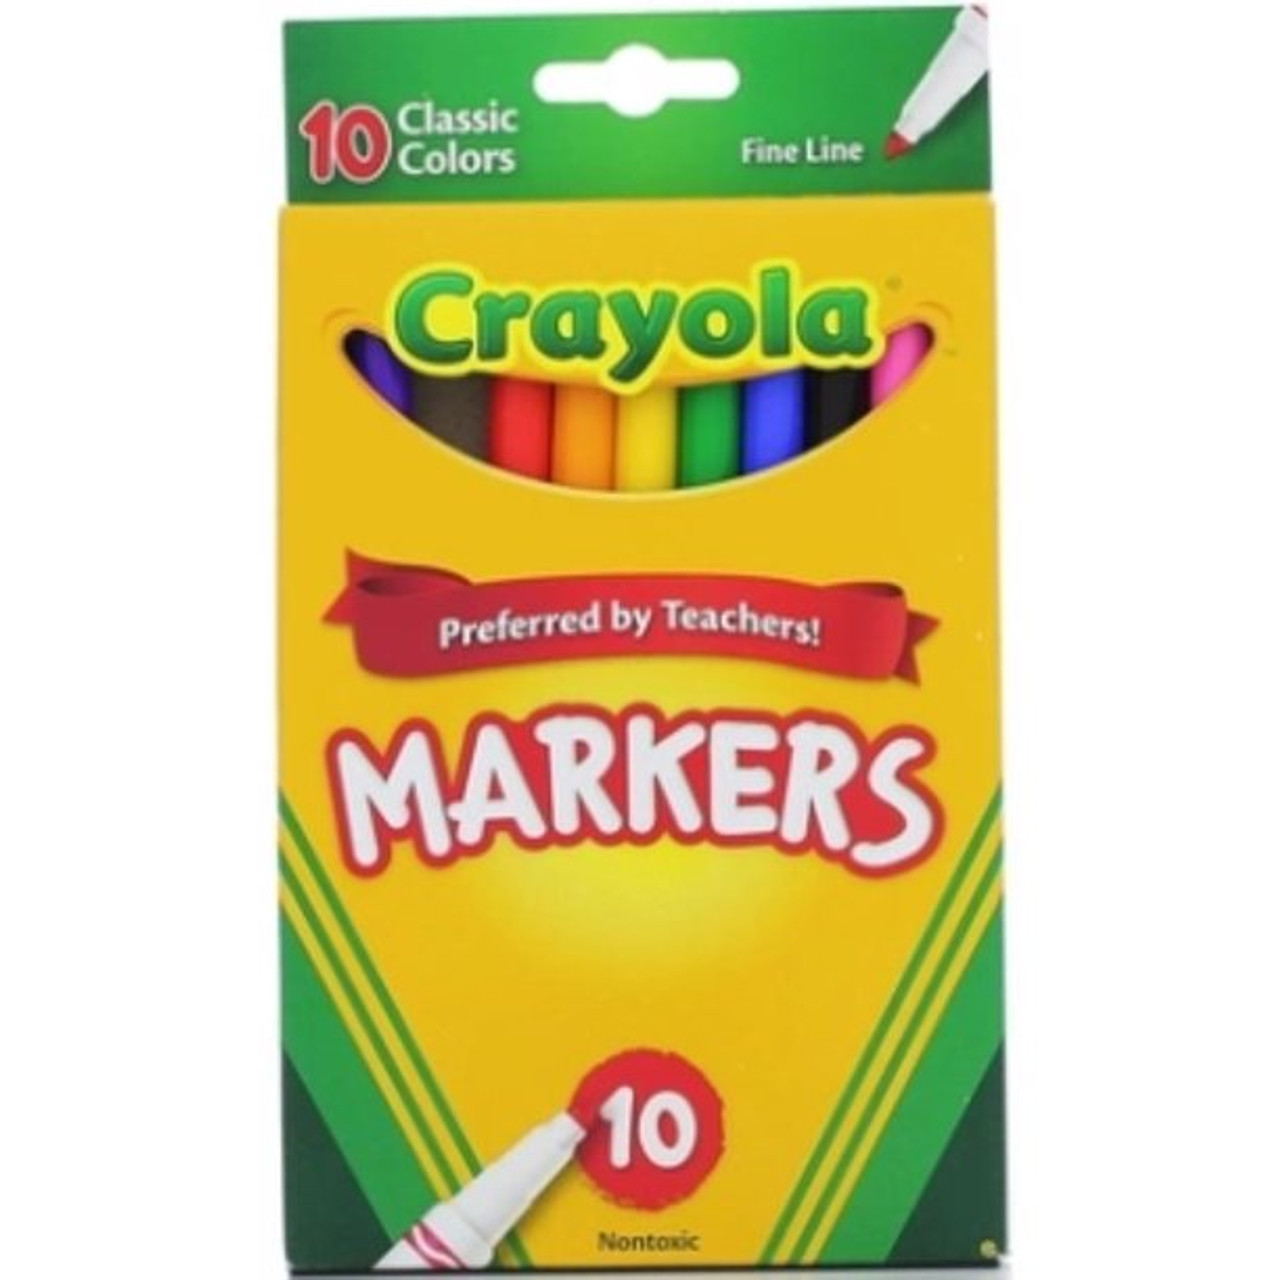 Crayola Classic Thin Line Marker Set, 10-Colors  - *Ships from Miami*